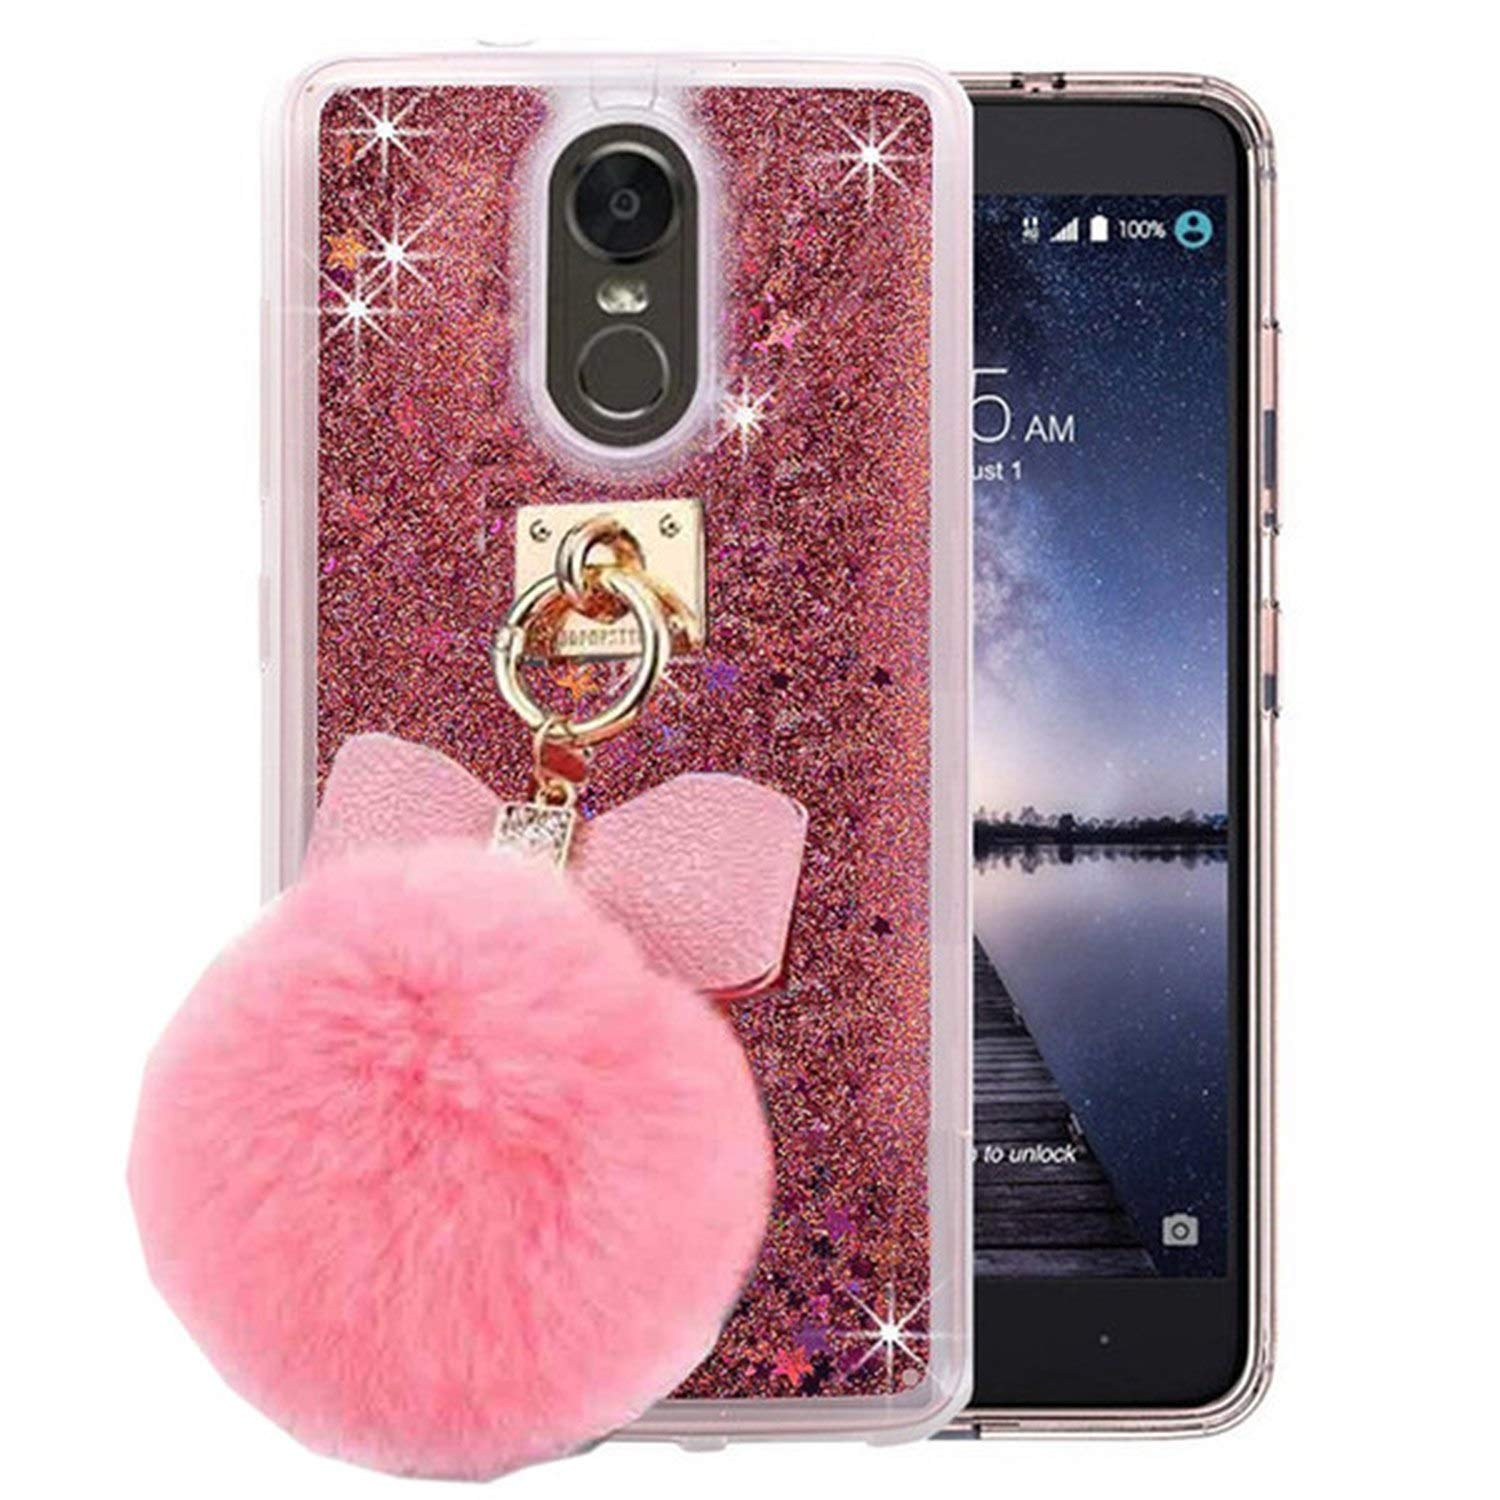 1Pcs Sparkle Sandglass Wine Cup Liquid Floating Diamond Bracelet Fur Ball Phone Case for LG Stylo 4 Q Stylus Stylus 4 Plus Cover,11,for LG Stylo 4